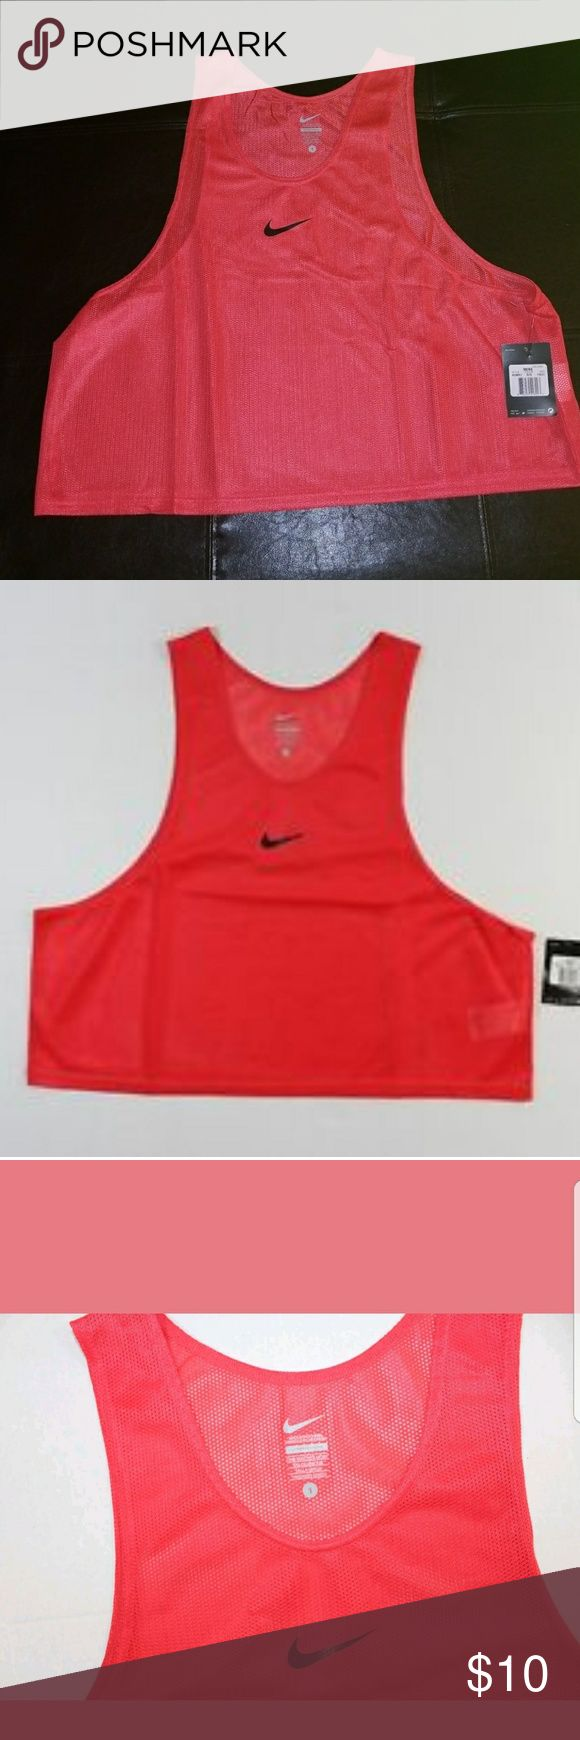 """Nike Scrimmage Vest Nike brand new with tags. Orange pullover.  Scrimmage vest with screen-printed Swoosh design trademark at center chest.  FABRIC: 100% polyester. One size fits most.  Pit-to-Pit 24.5""""  Length 20.75"""" Great for football and soccer scrimmage games or workouts. (Bin 19) Nike Shirts Tank Tops"""